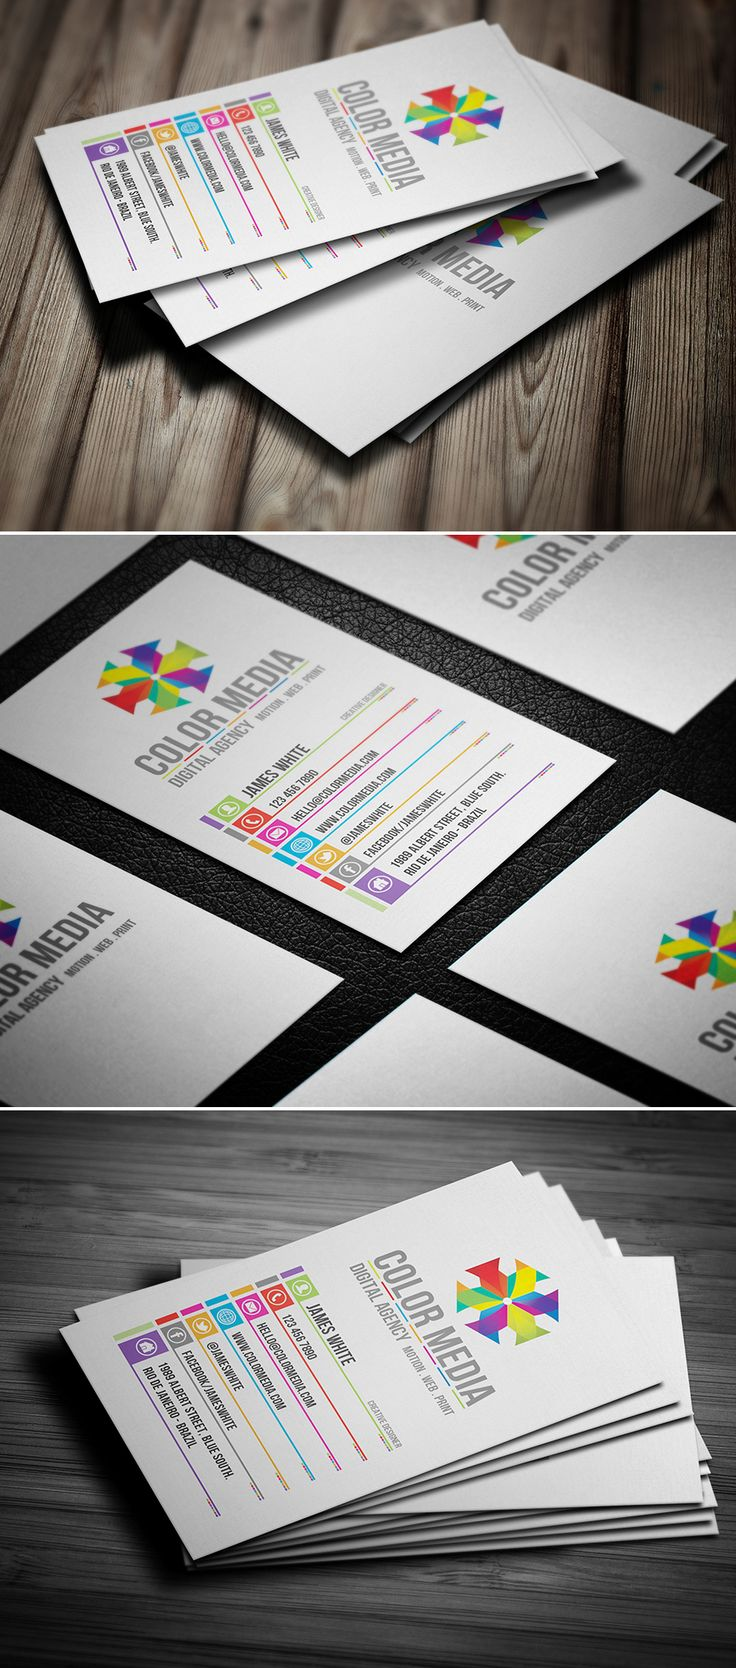 46 best business cards images on pinterest cards design and creative corporate business card by bdgpixel creative corporate business card is modern clean flat design style and elegant for anything creative agency magicingreecefo Gallery